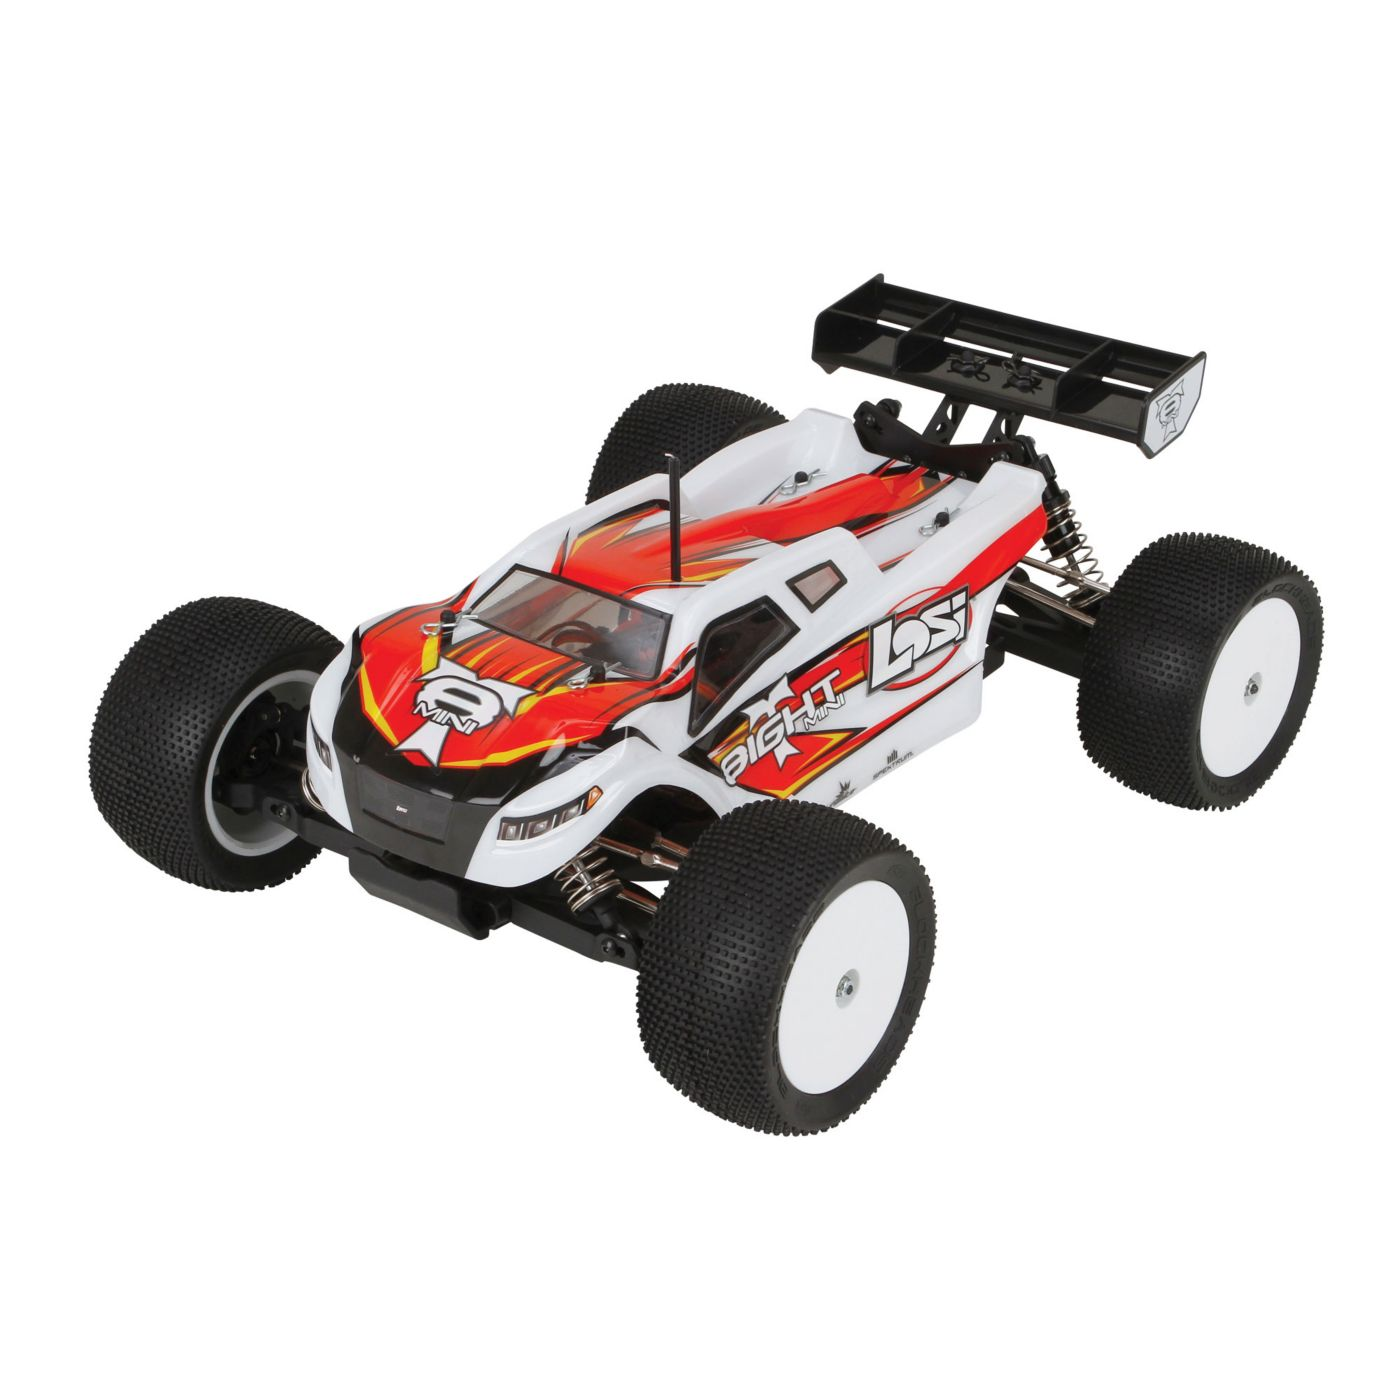 Mini 8ight Truggy